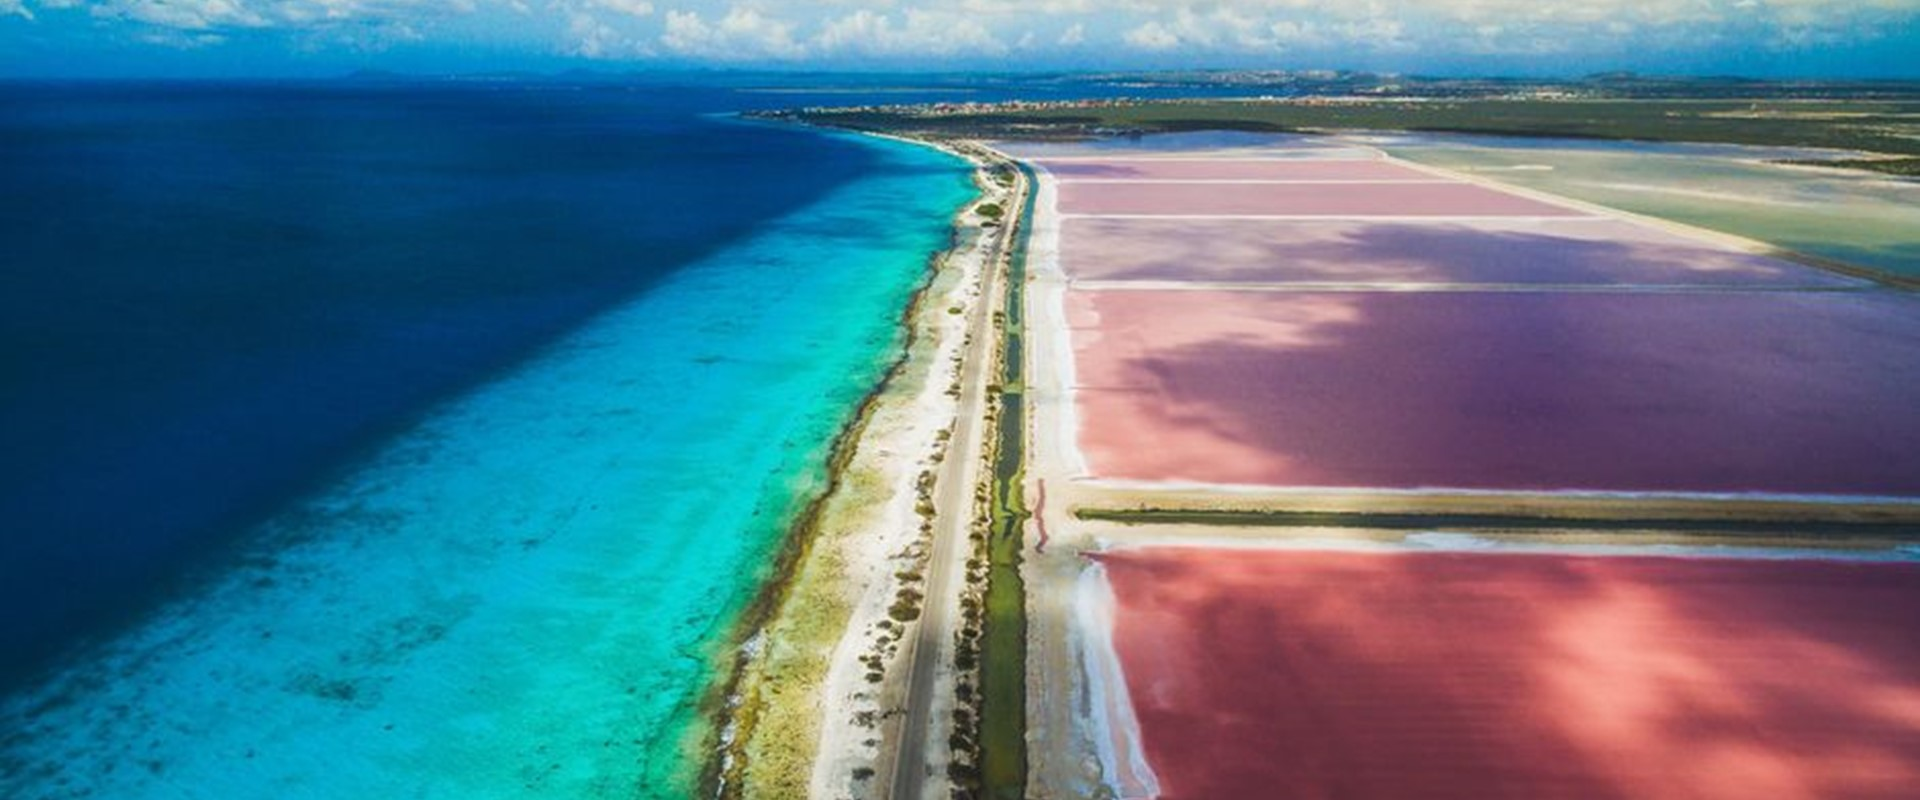 South Bonaire in one day: 9 places of interest